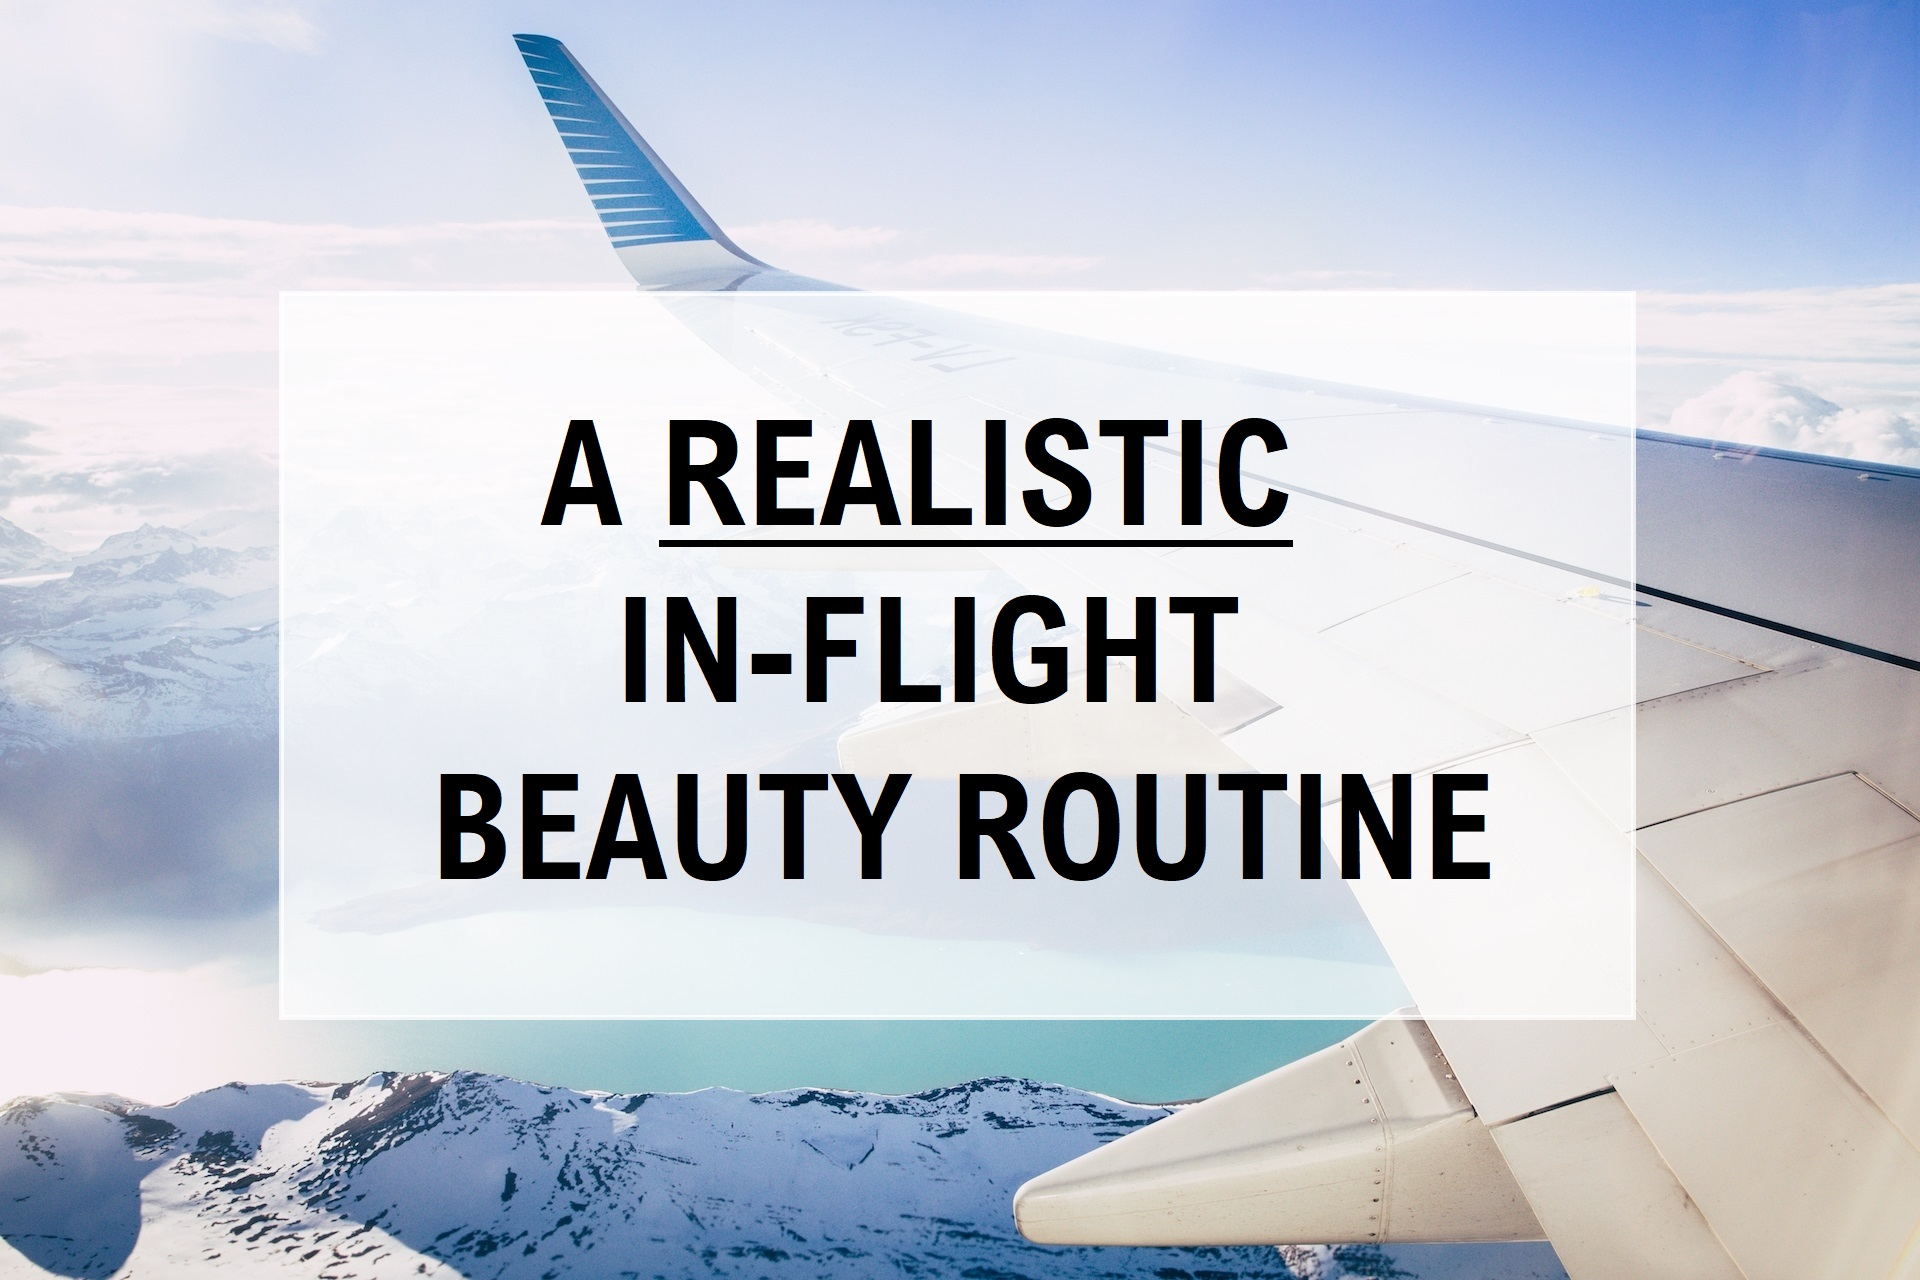 In Flight Beauty Routine